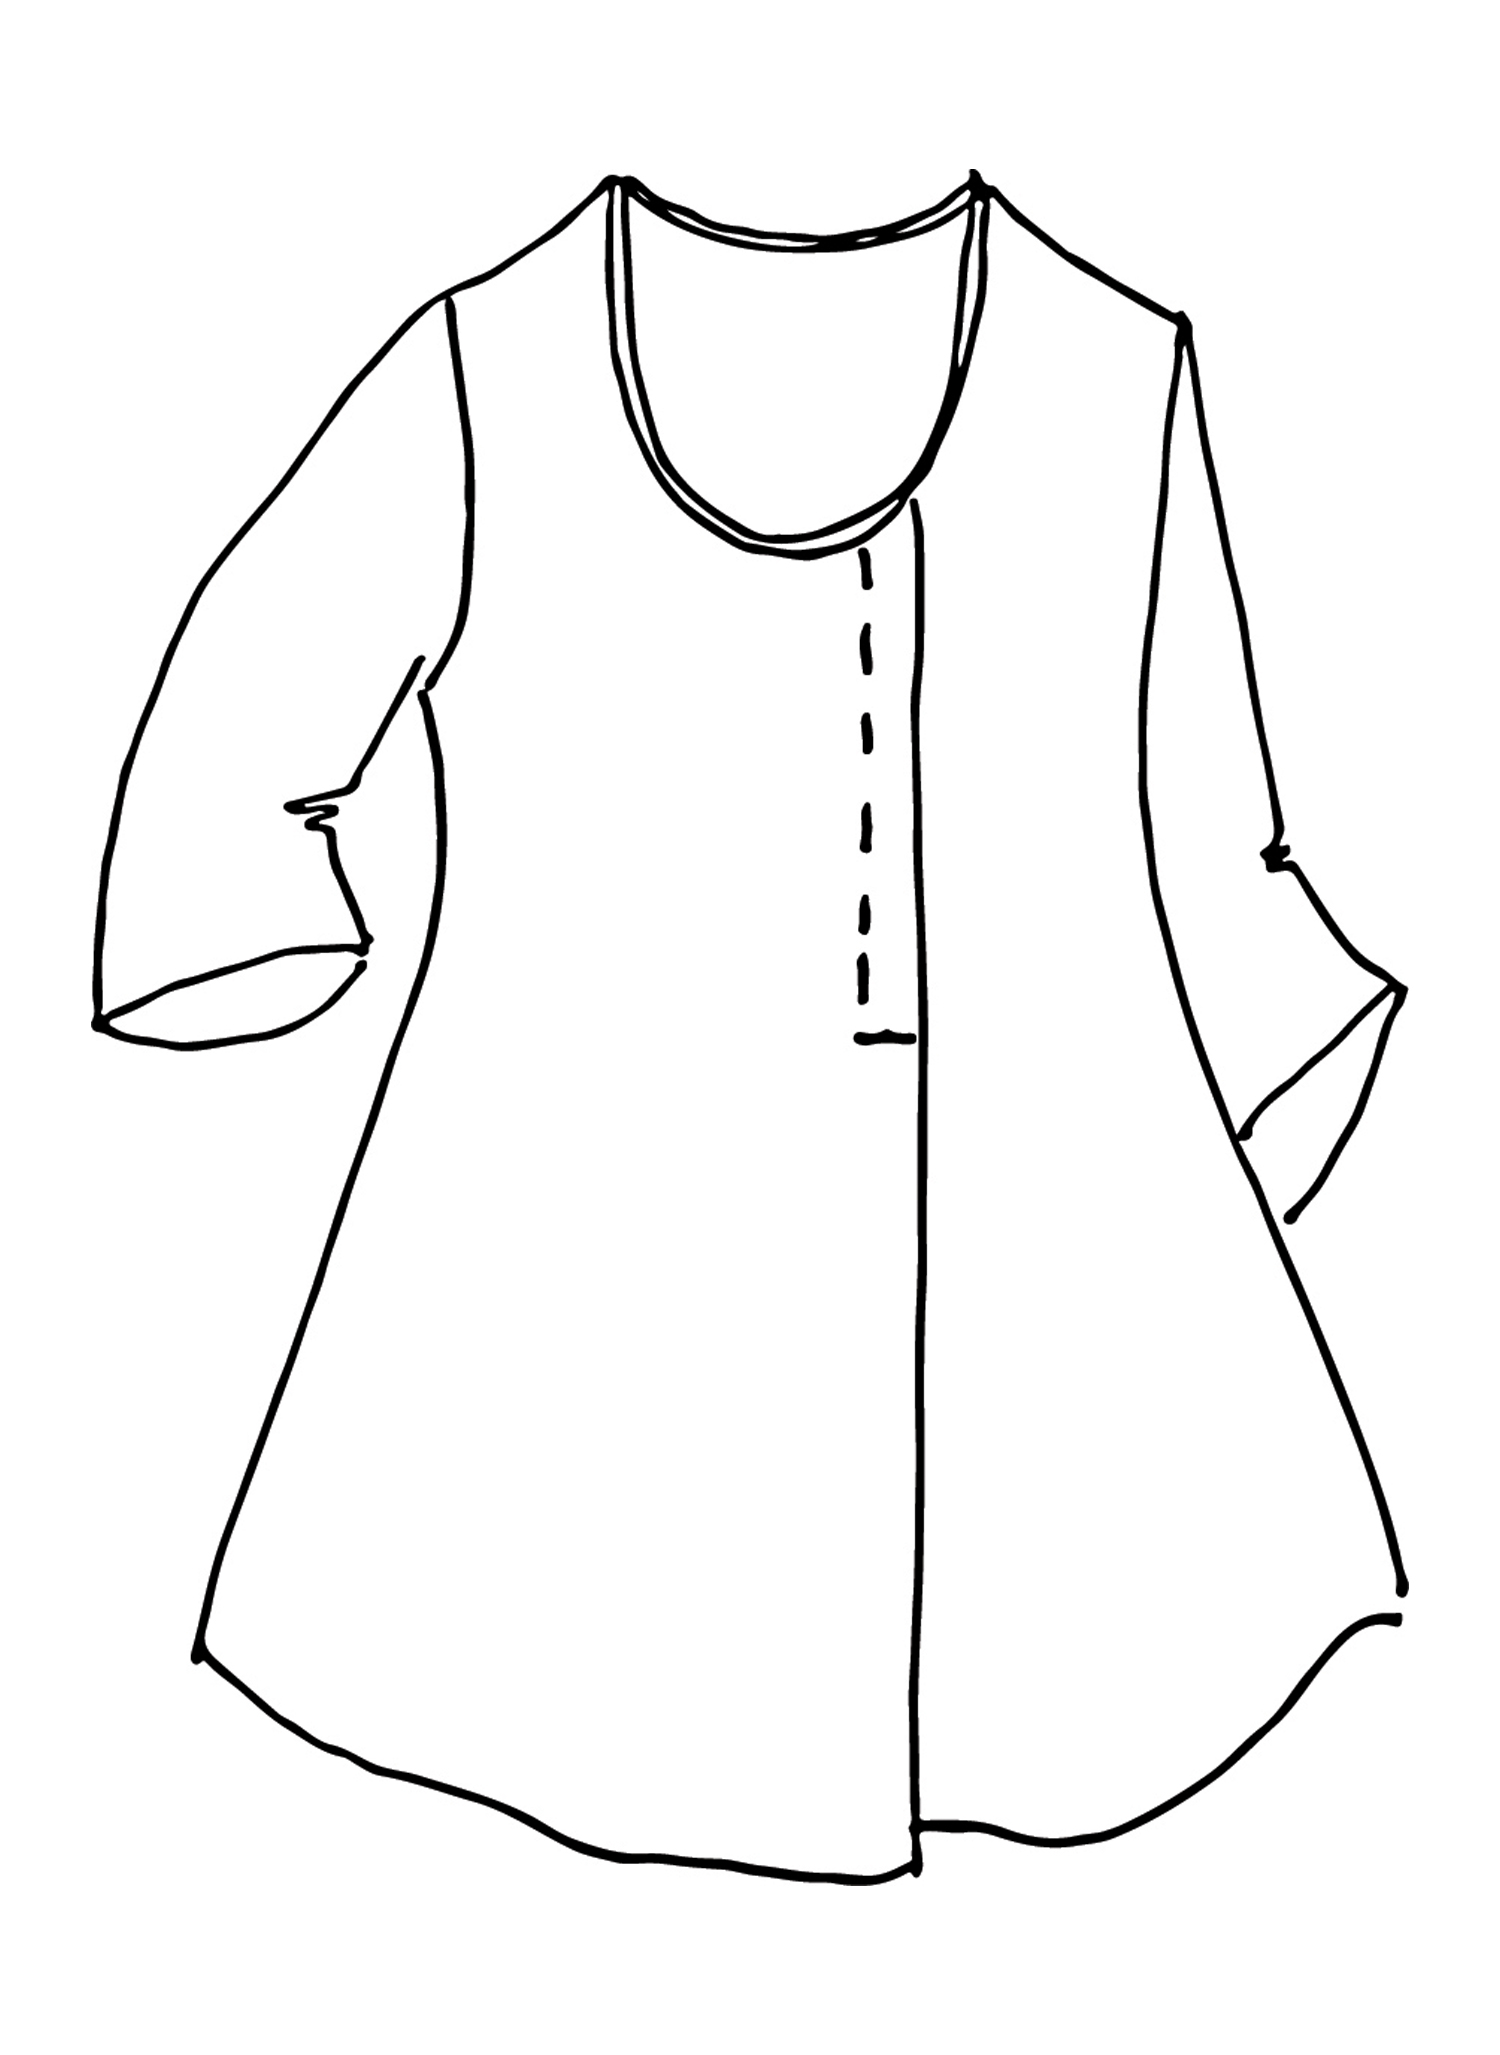 Tucked Tunic sketch image